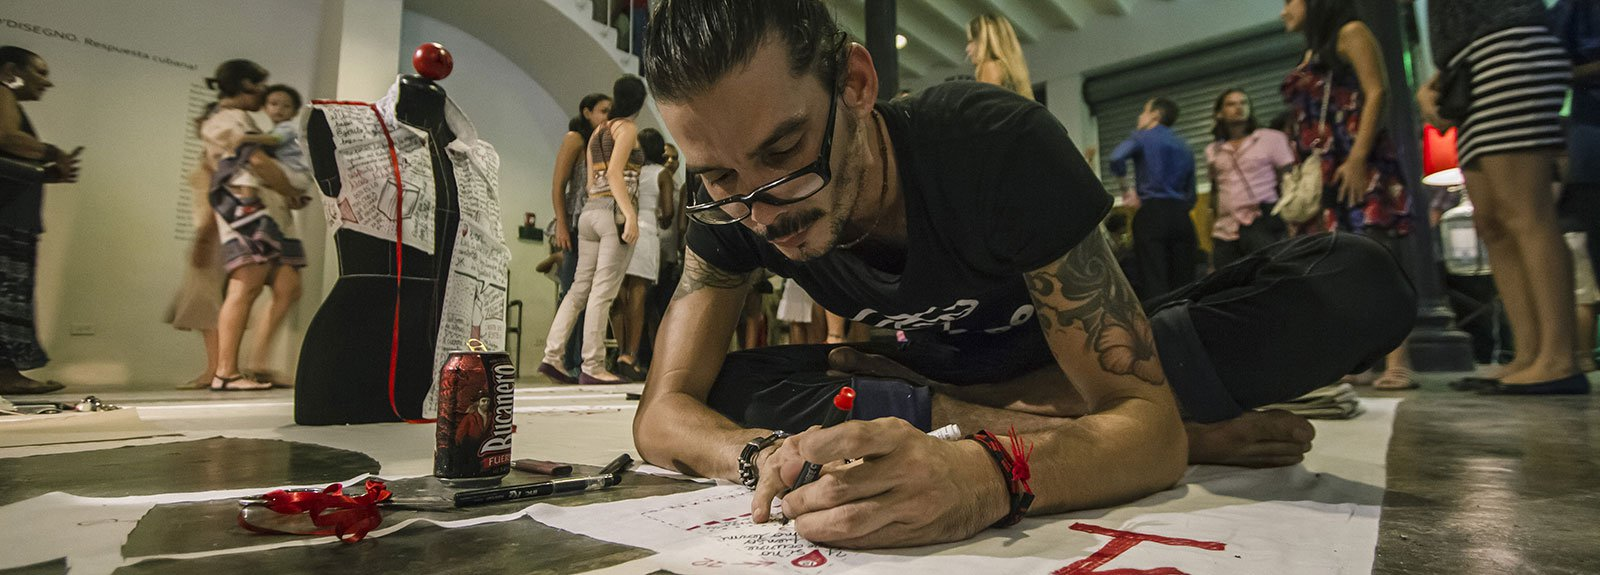 Man writing on a paper in the floor on a exhibition at factoria habana gallery